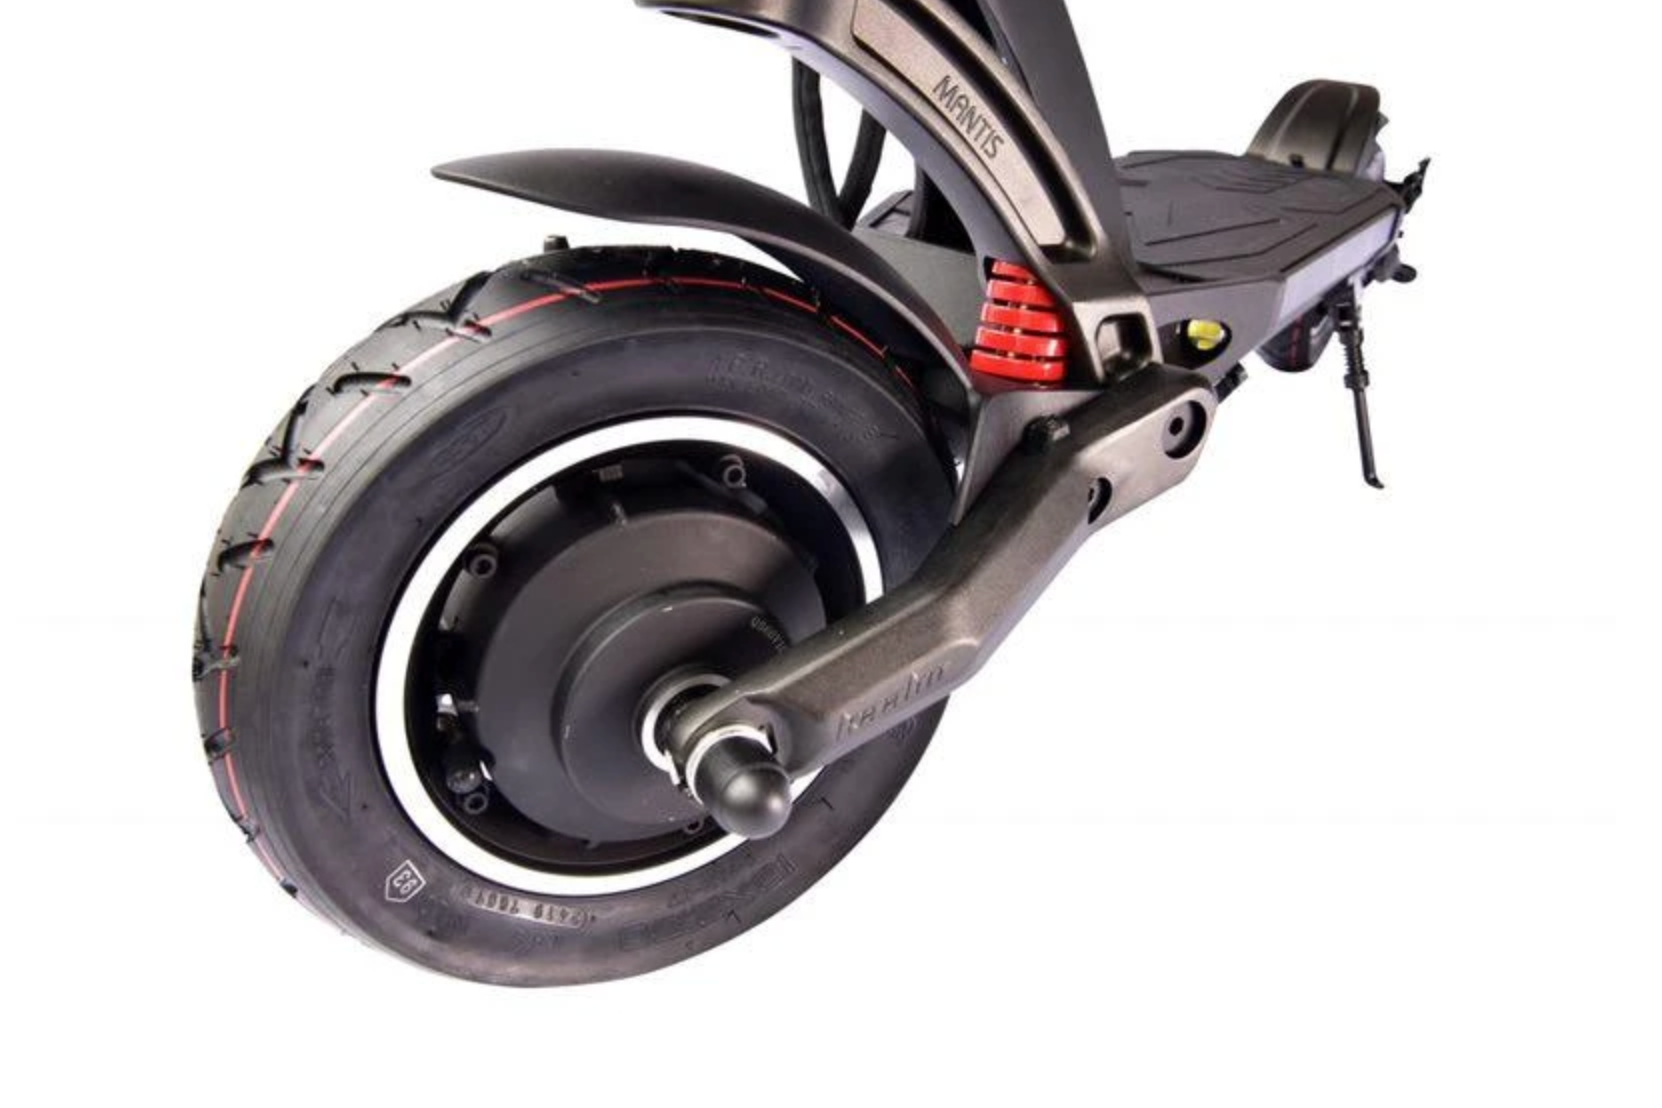 Kaabo Mantis Pro Electric Scooter Front Wheel Image